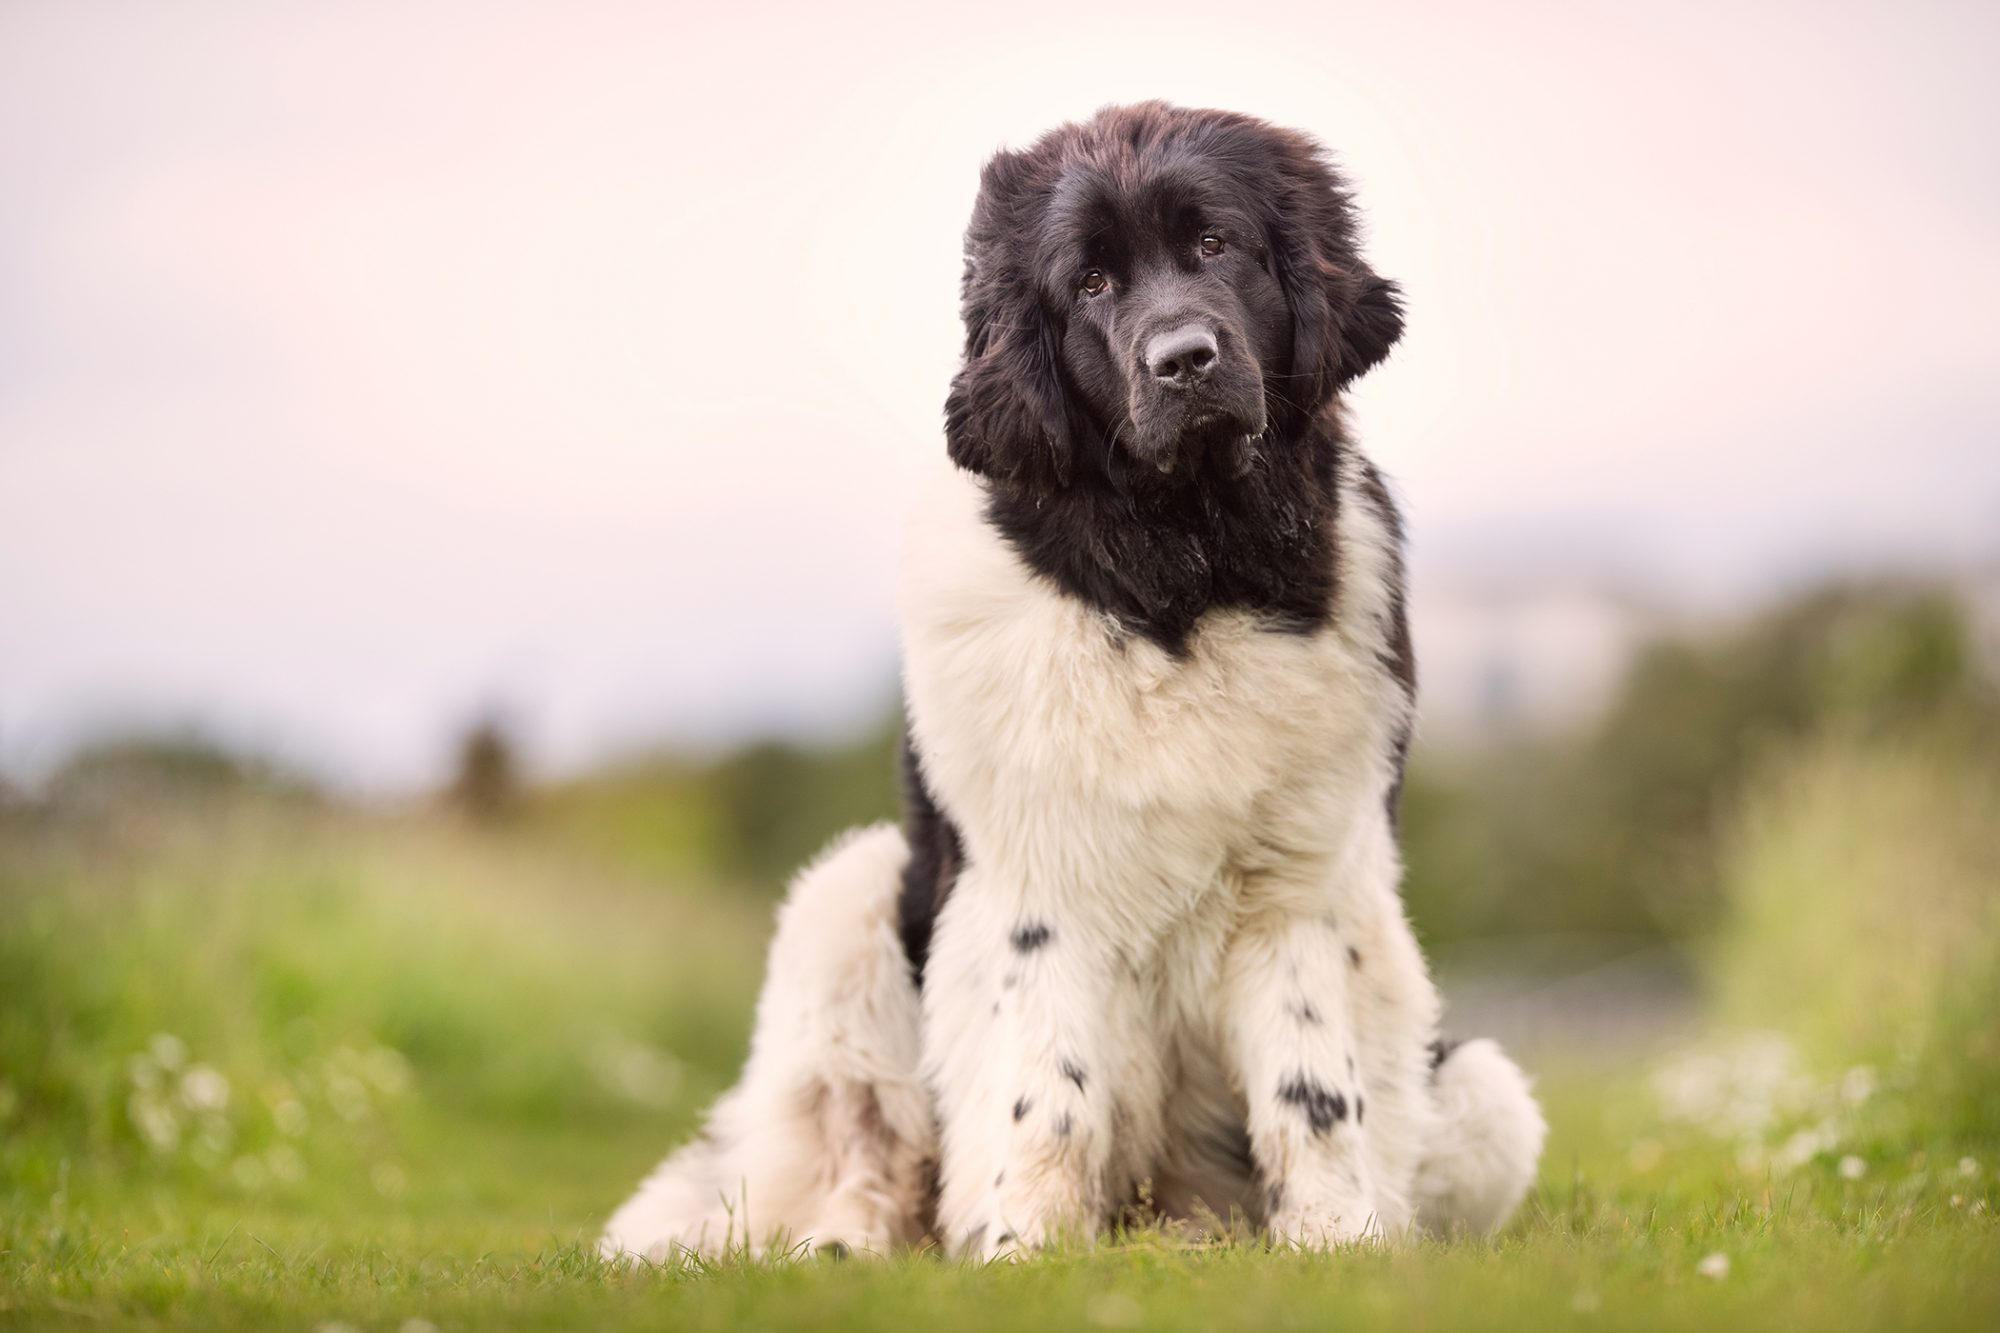 Adult Newfoundland sits with head titled in grassy field